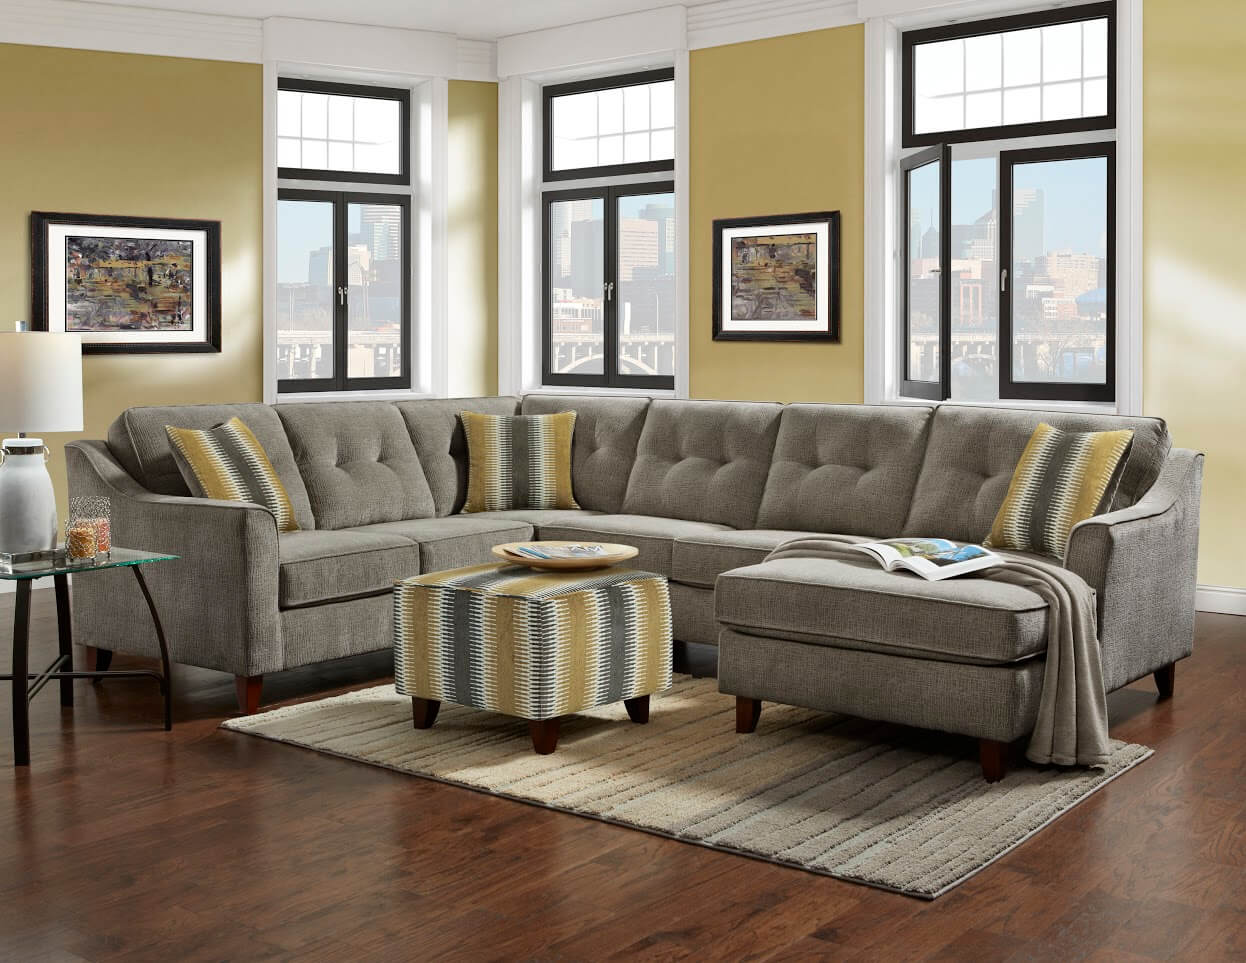 Sydney Grey Sectional Sectional Sofa Sets